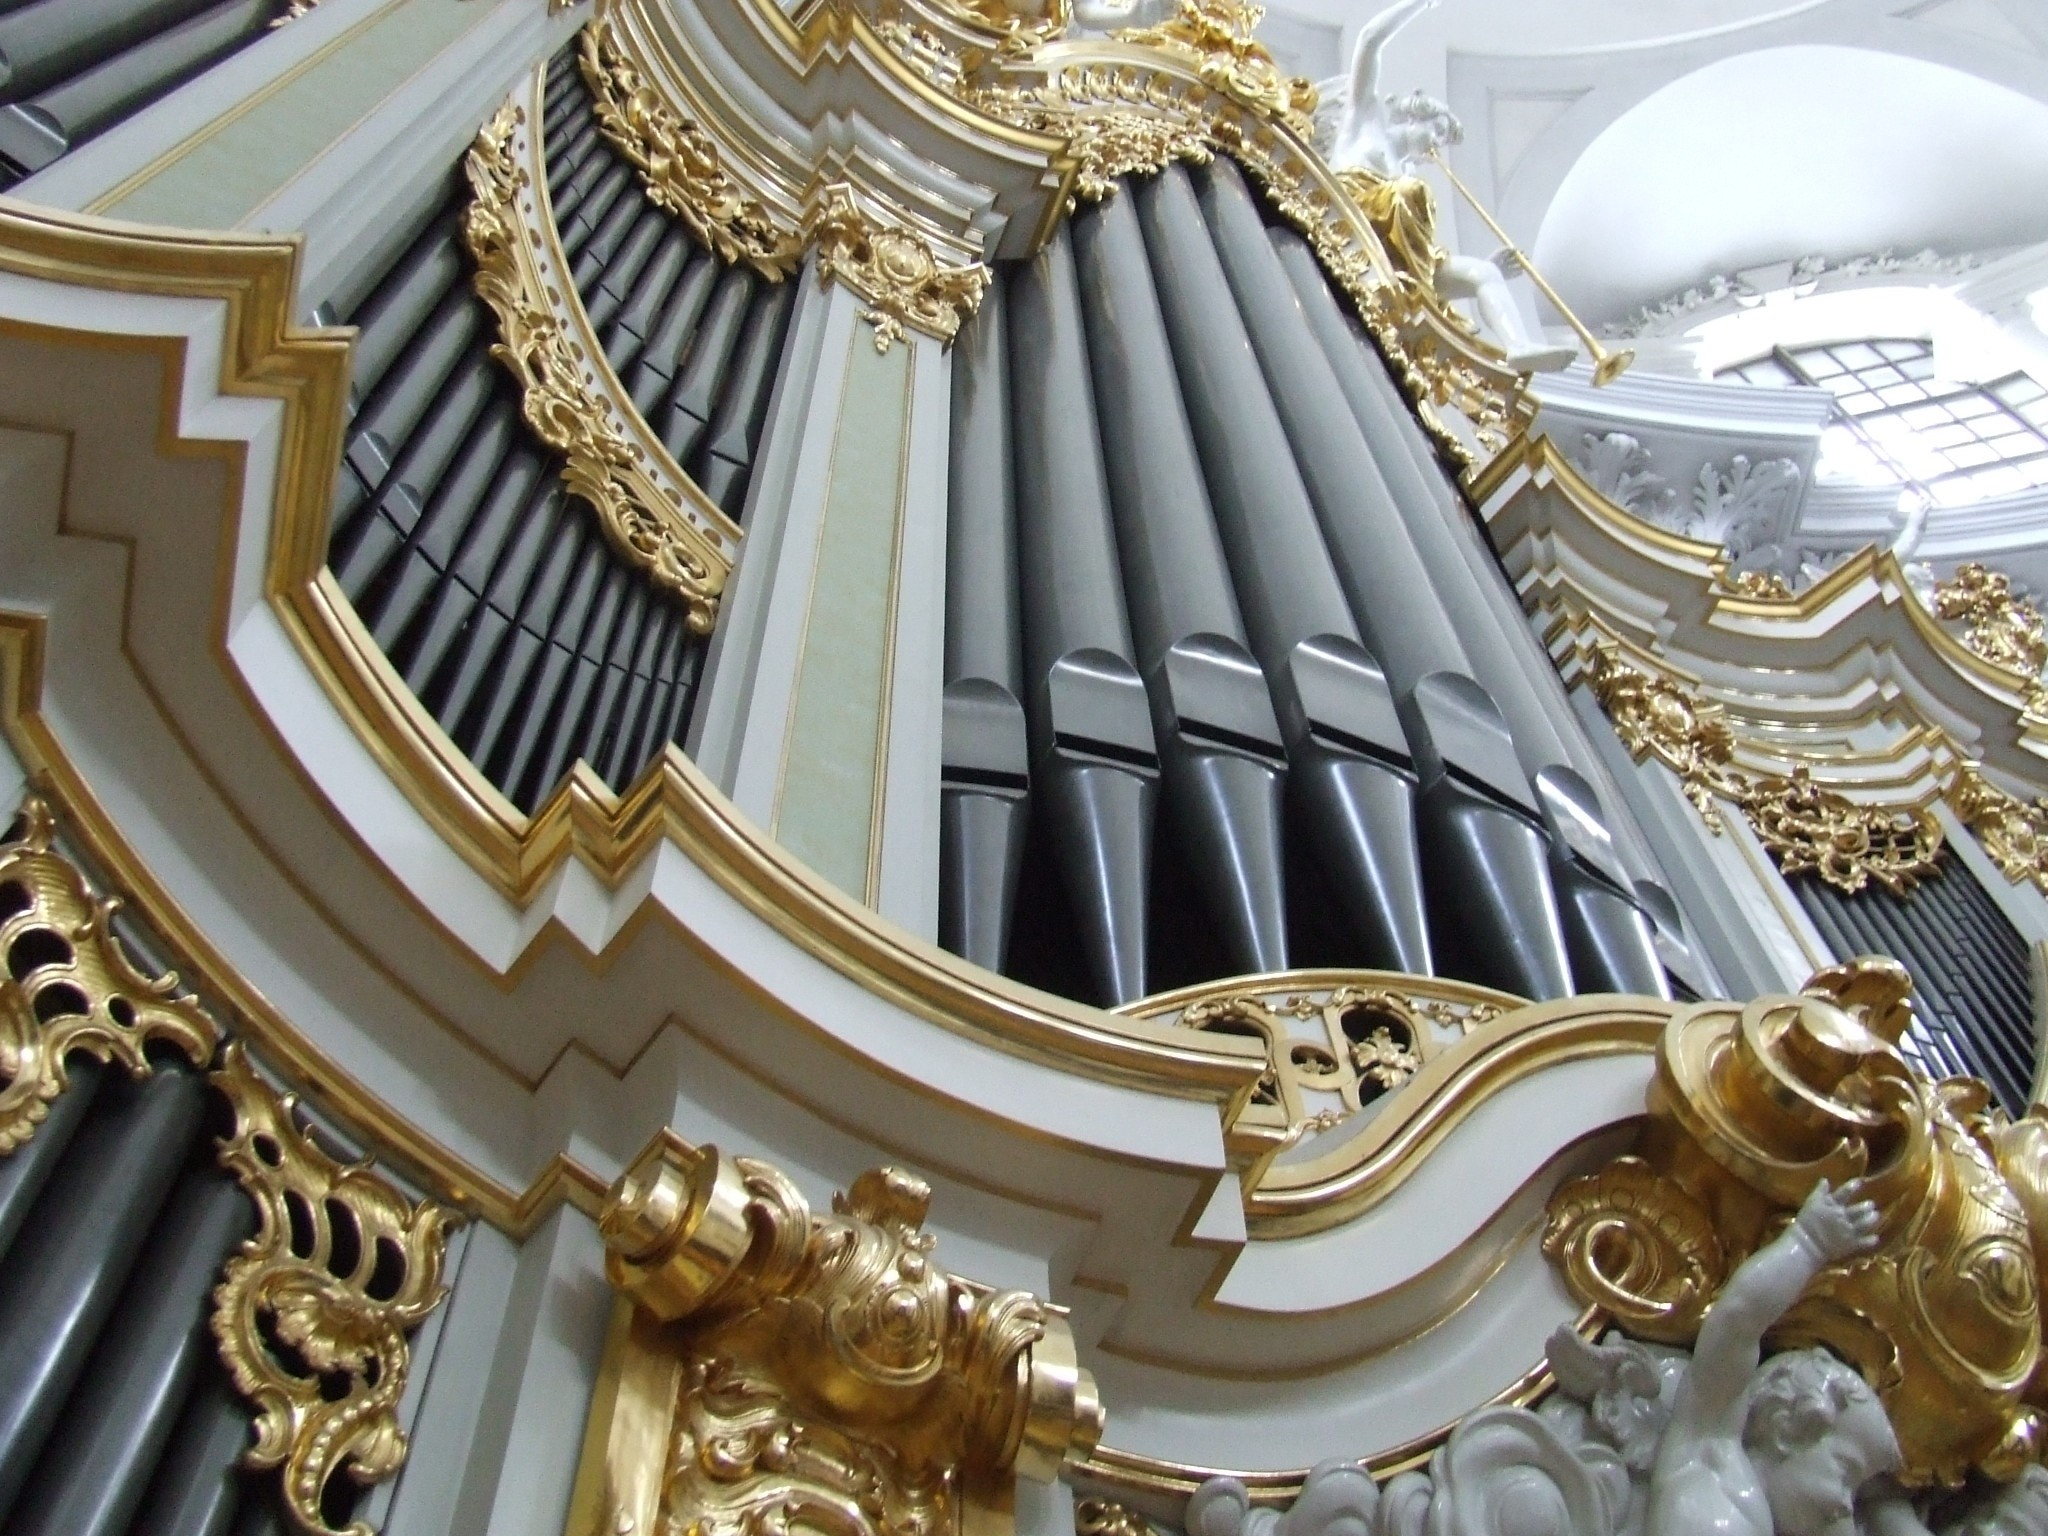 2048x1536 white gray and gold cathedral organ